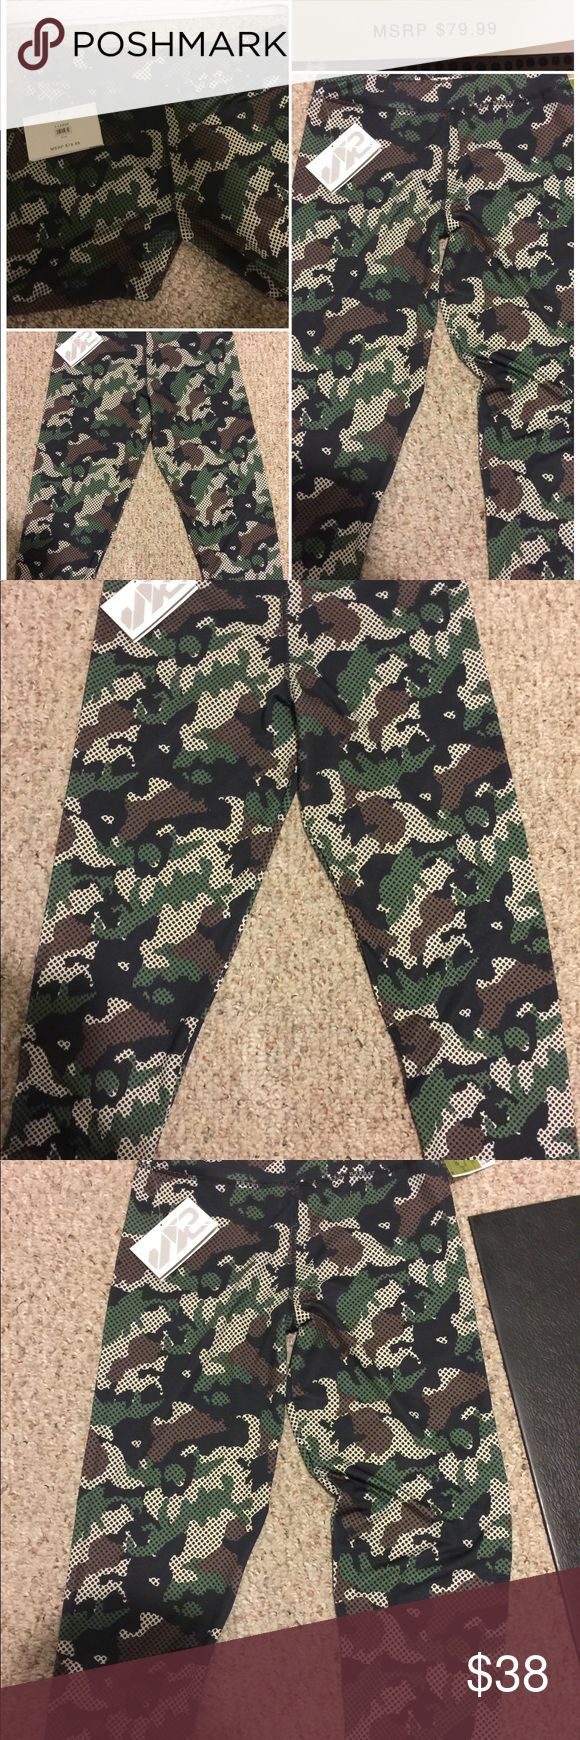 Camouflage leggings yoga cross fit  light XL💜 Brand new camouflage leggings great for yoga, cross fair, kickboxing or just wearing for casual play. Pairs nicely with the Fabletics sport bra I have for sale as well. Buy them as a set and get 20% off. These are XL and 90% Polyester and 10% Spandex S2Sportswear Pants Leggings